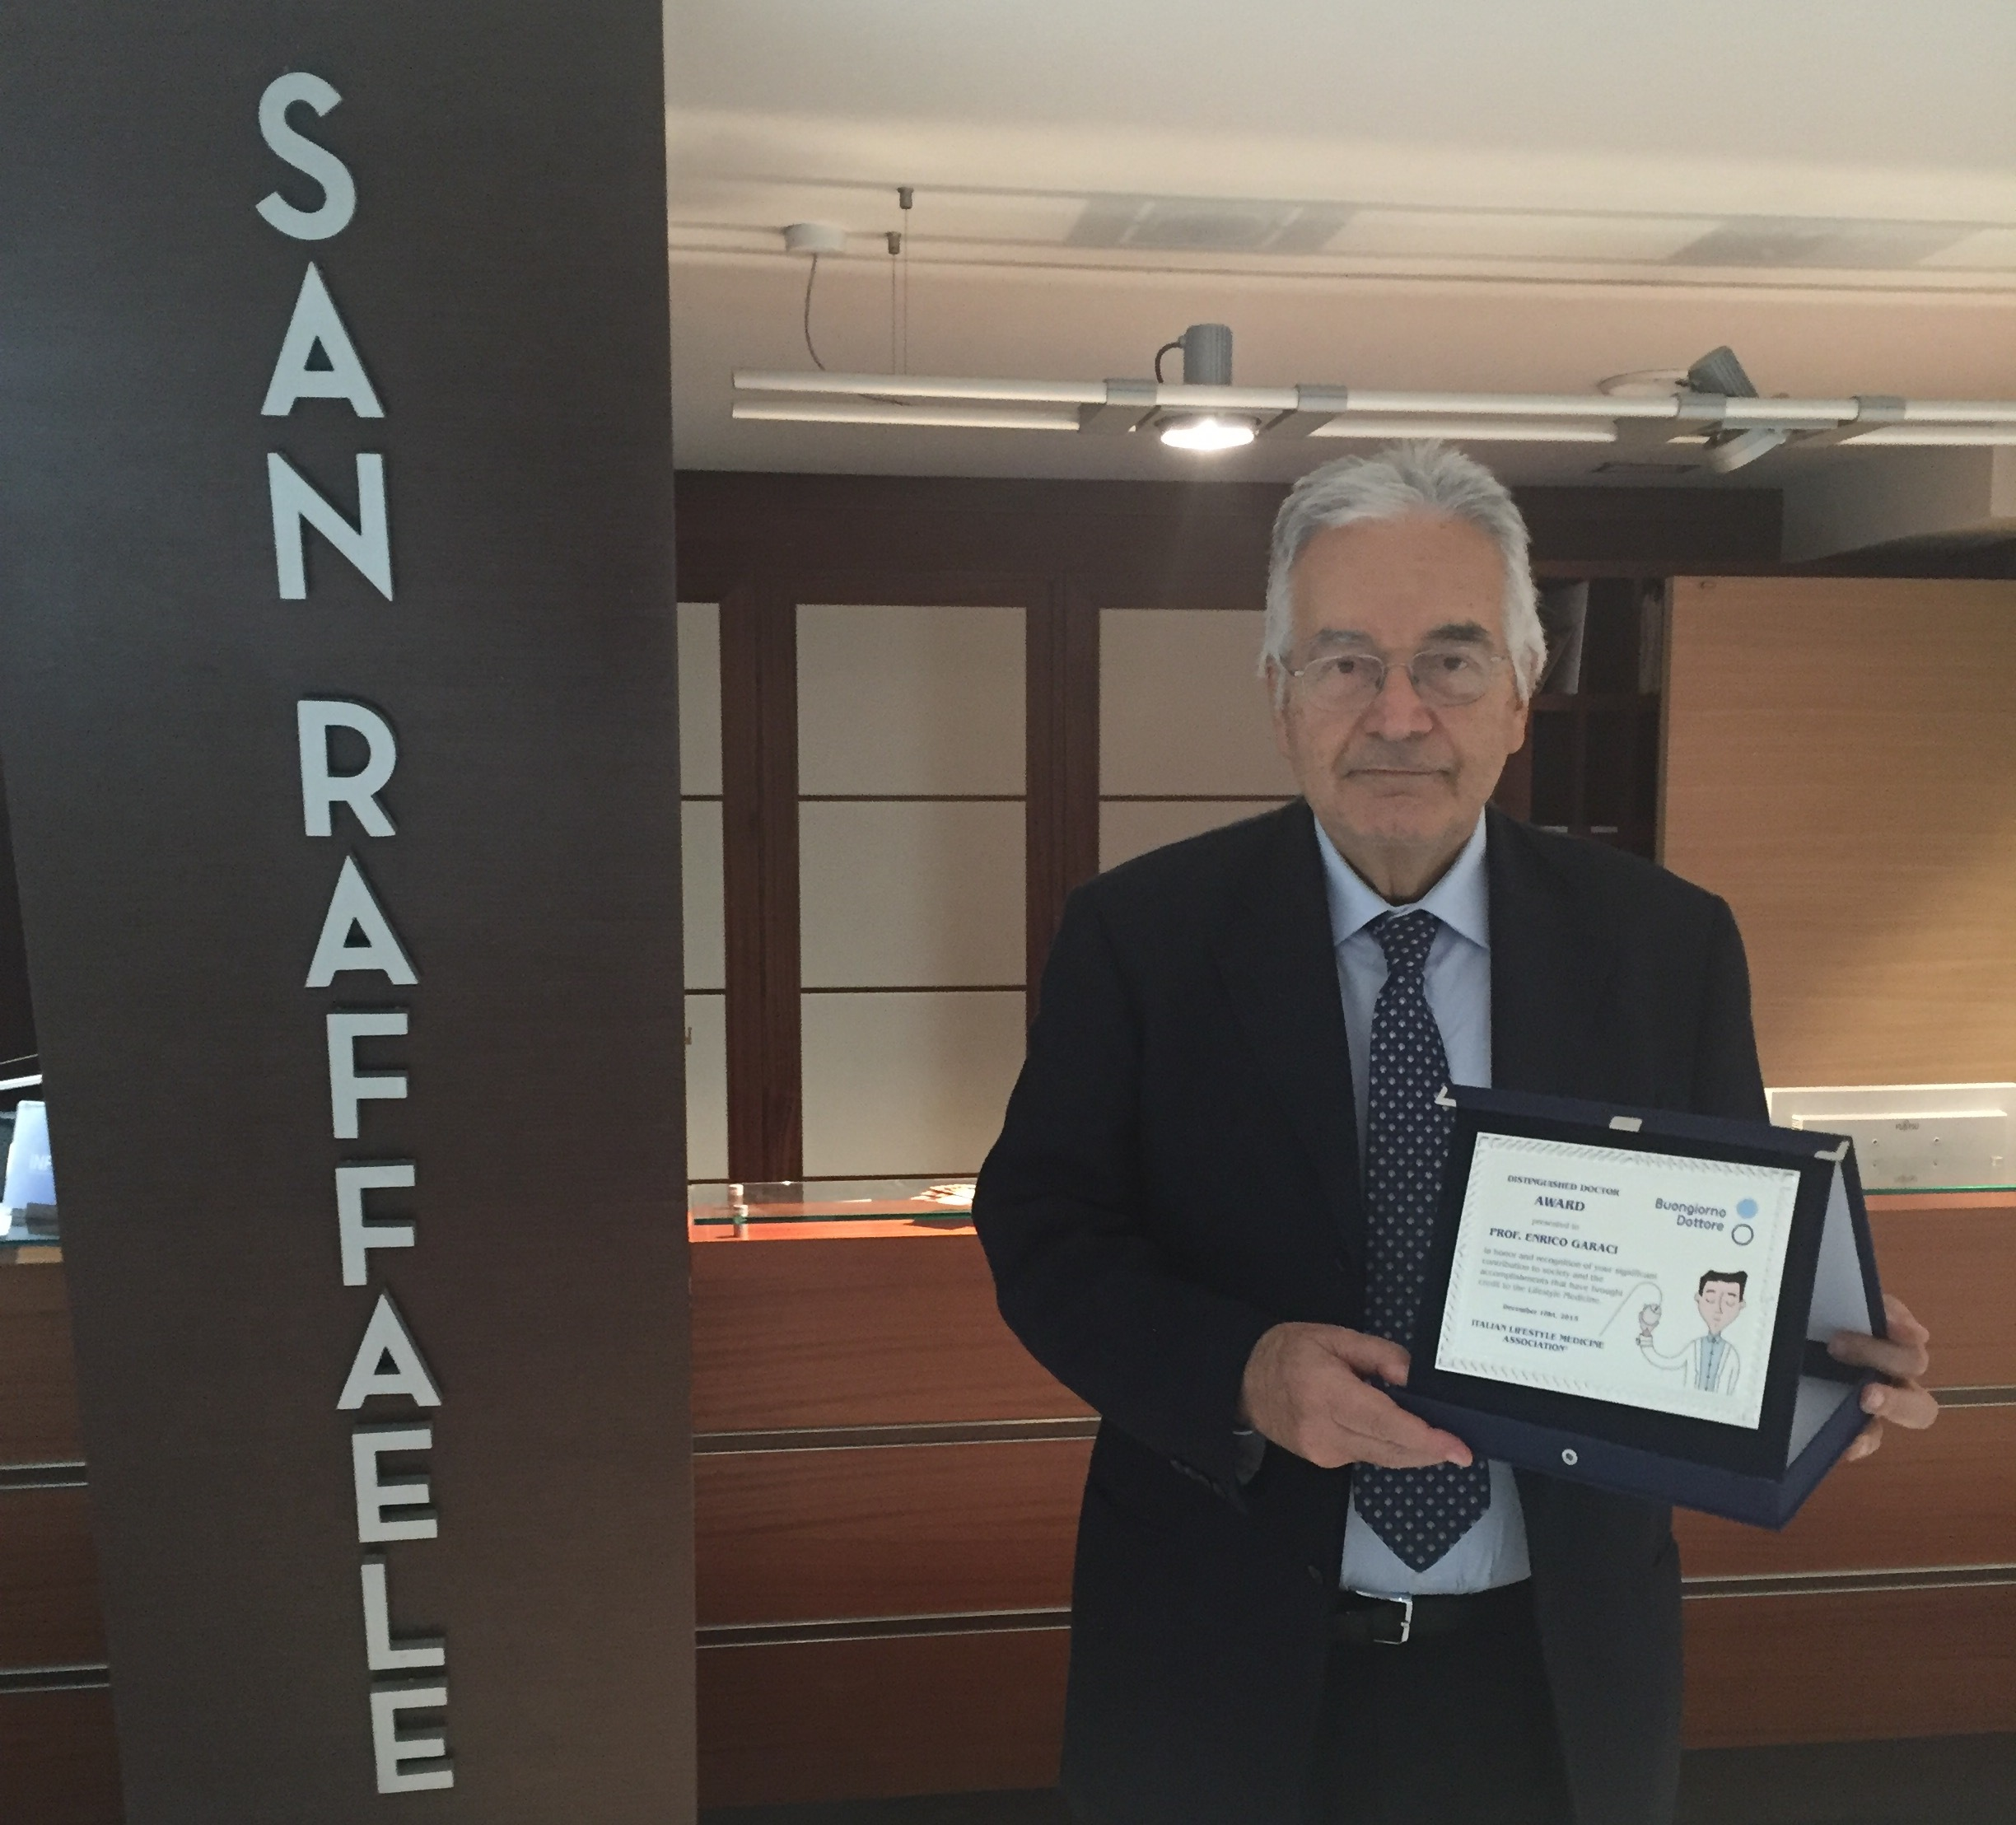 Presidente del Comitato Tecnico Scientifico